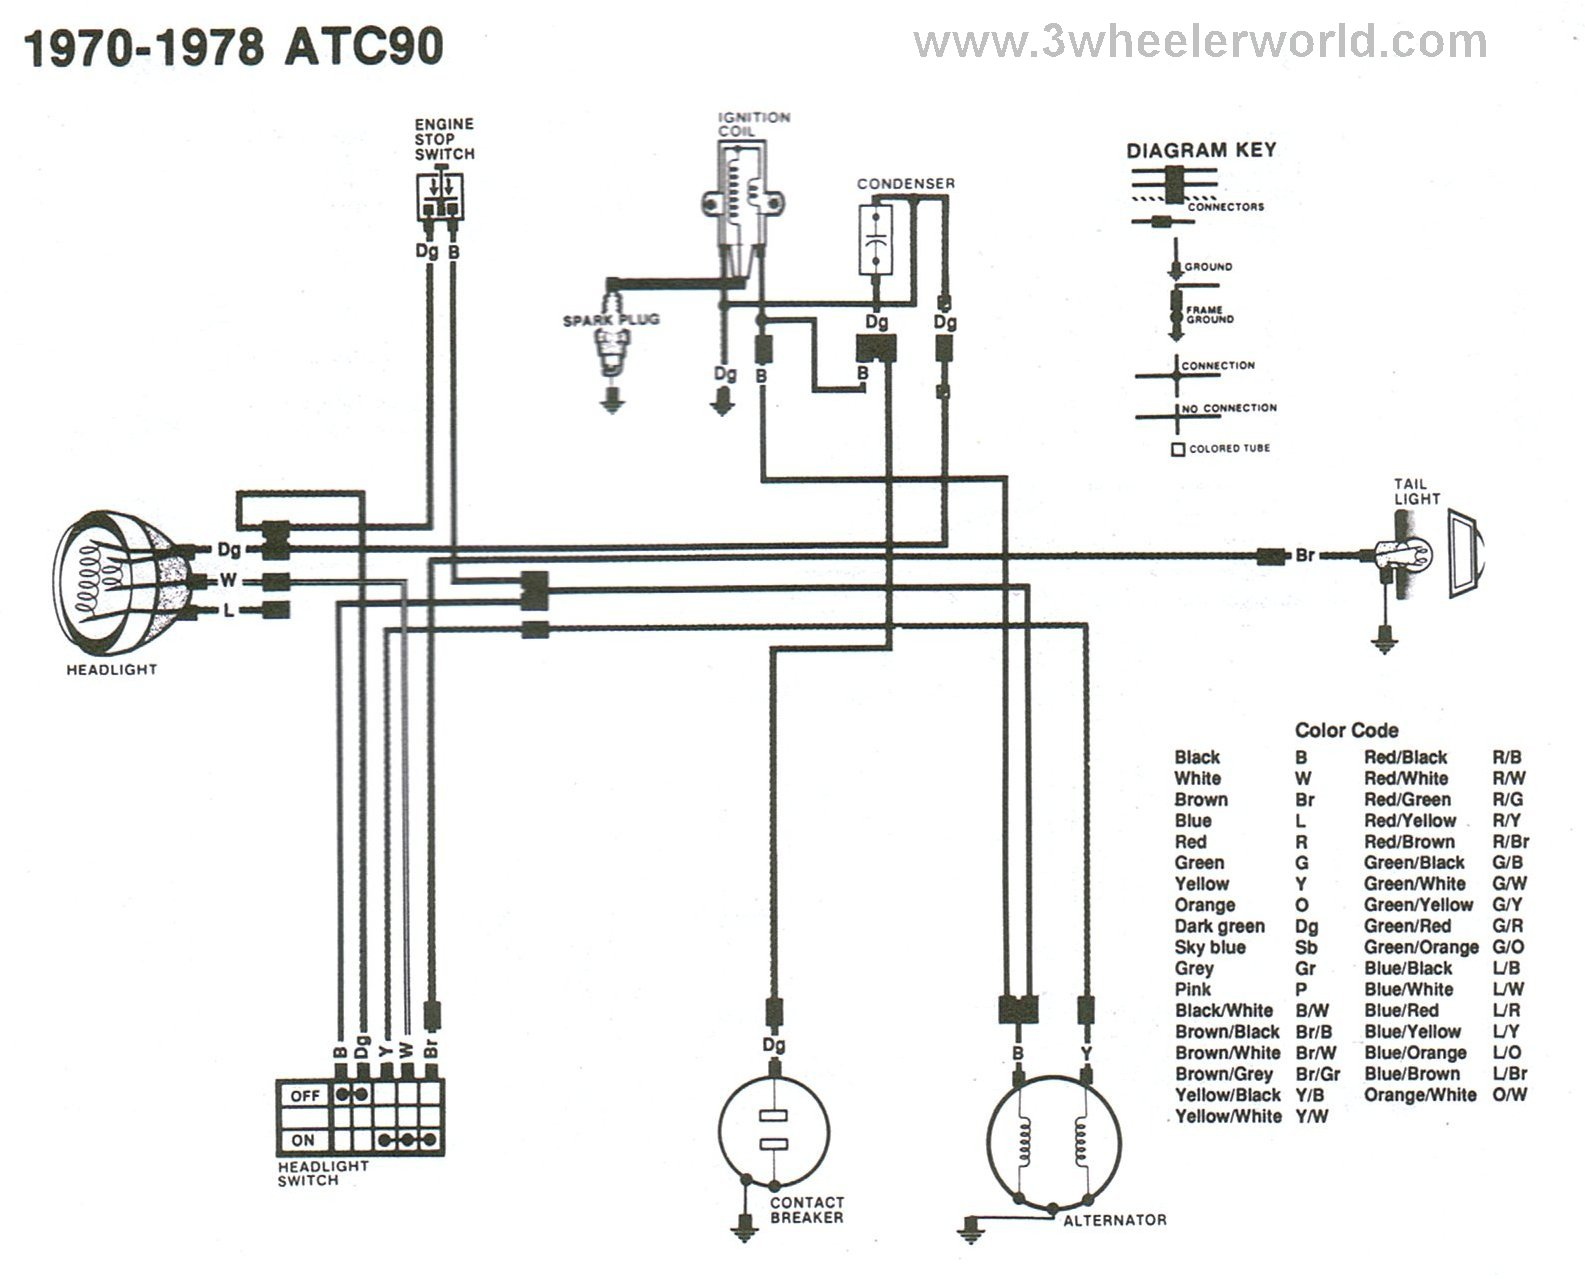 Honda Atc 200 Wiring Diagram Library 1983 Camaro Ignition Us90 1970 Thru 1973 Atc90 1974 1978